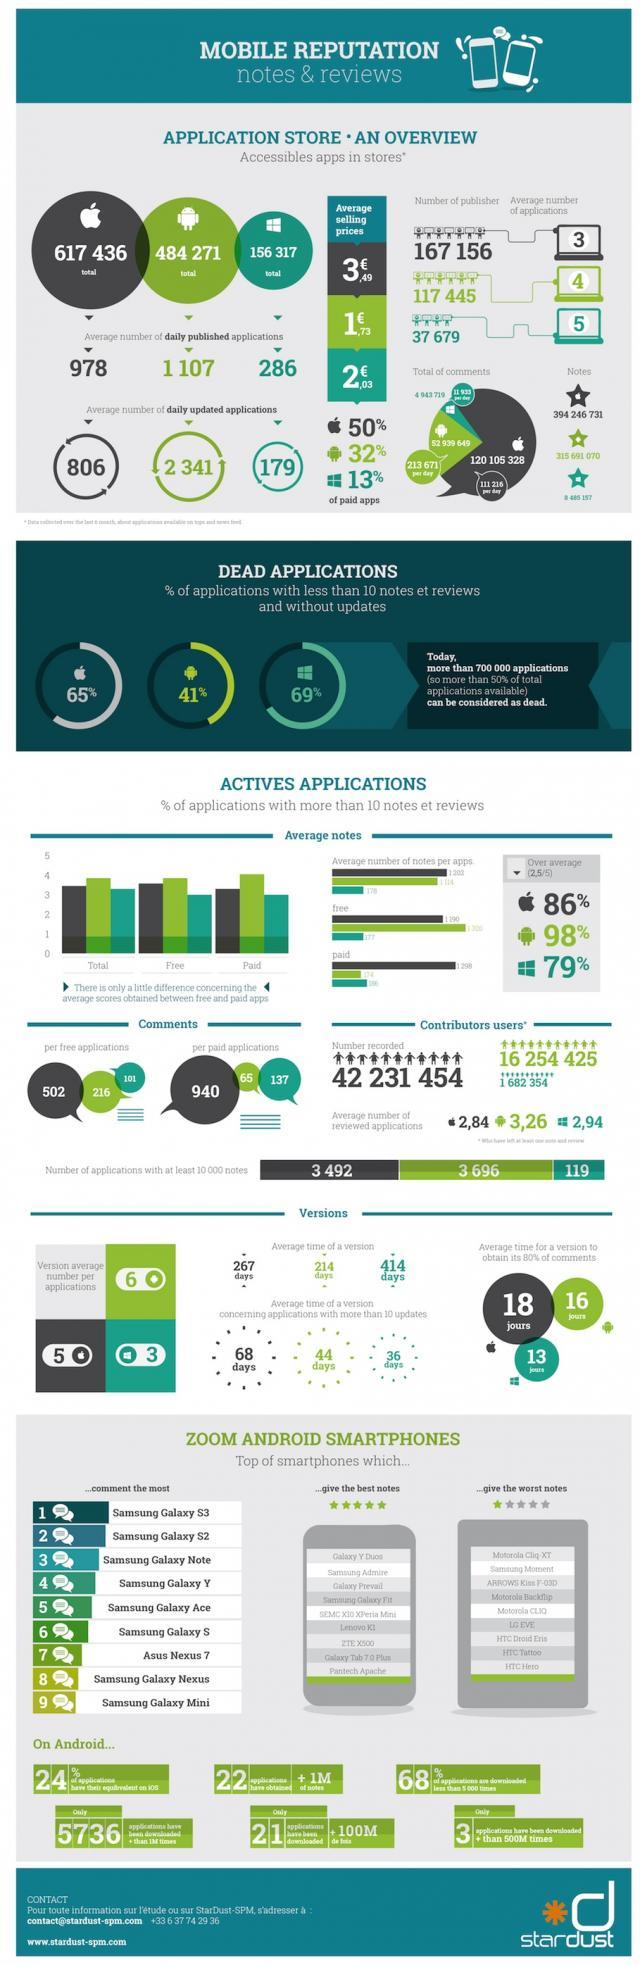 Web colors lime - Attrition Rates On Apps Infographic Design Great Color Palette Of Teal